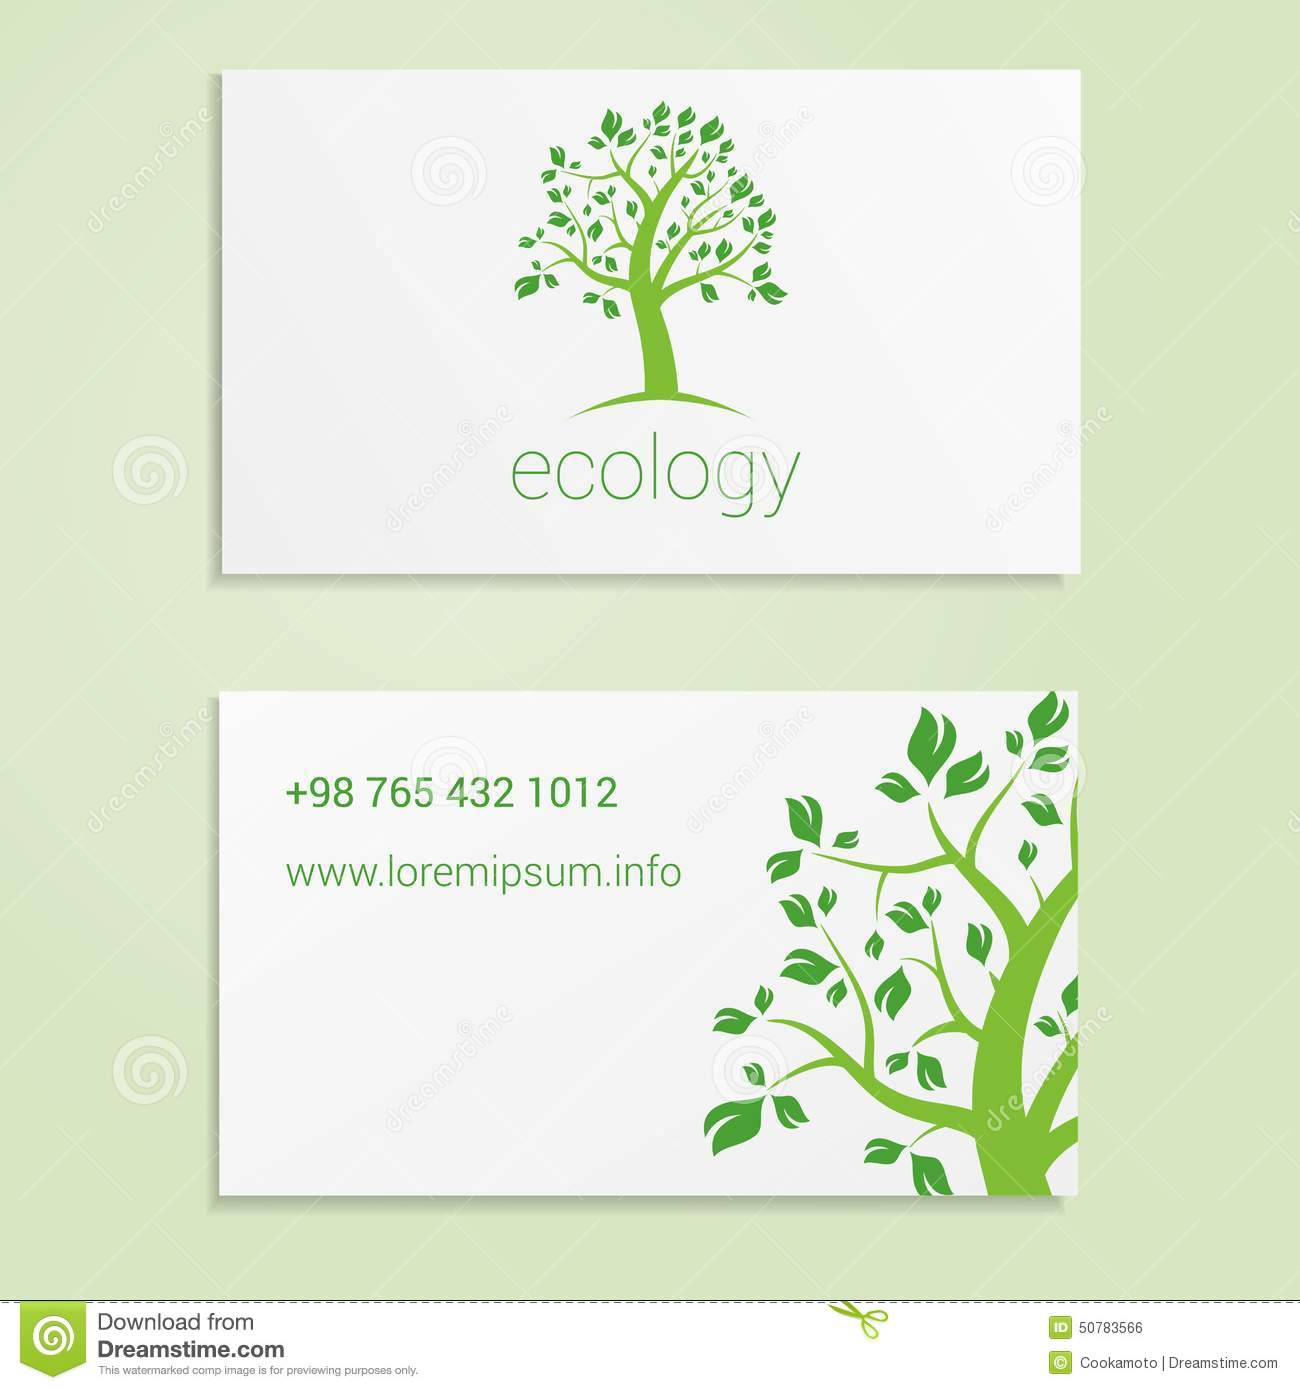 ecological or eco energy company business card stock vector   image 50783566